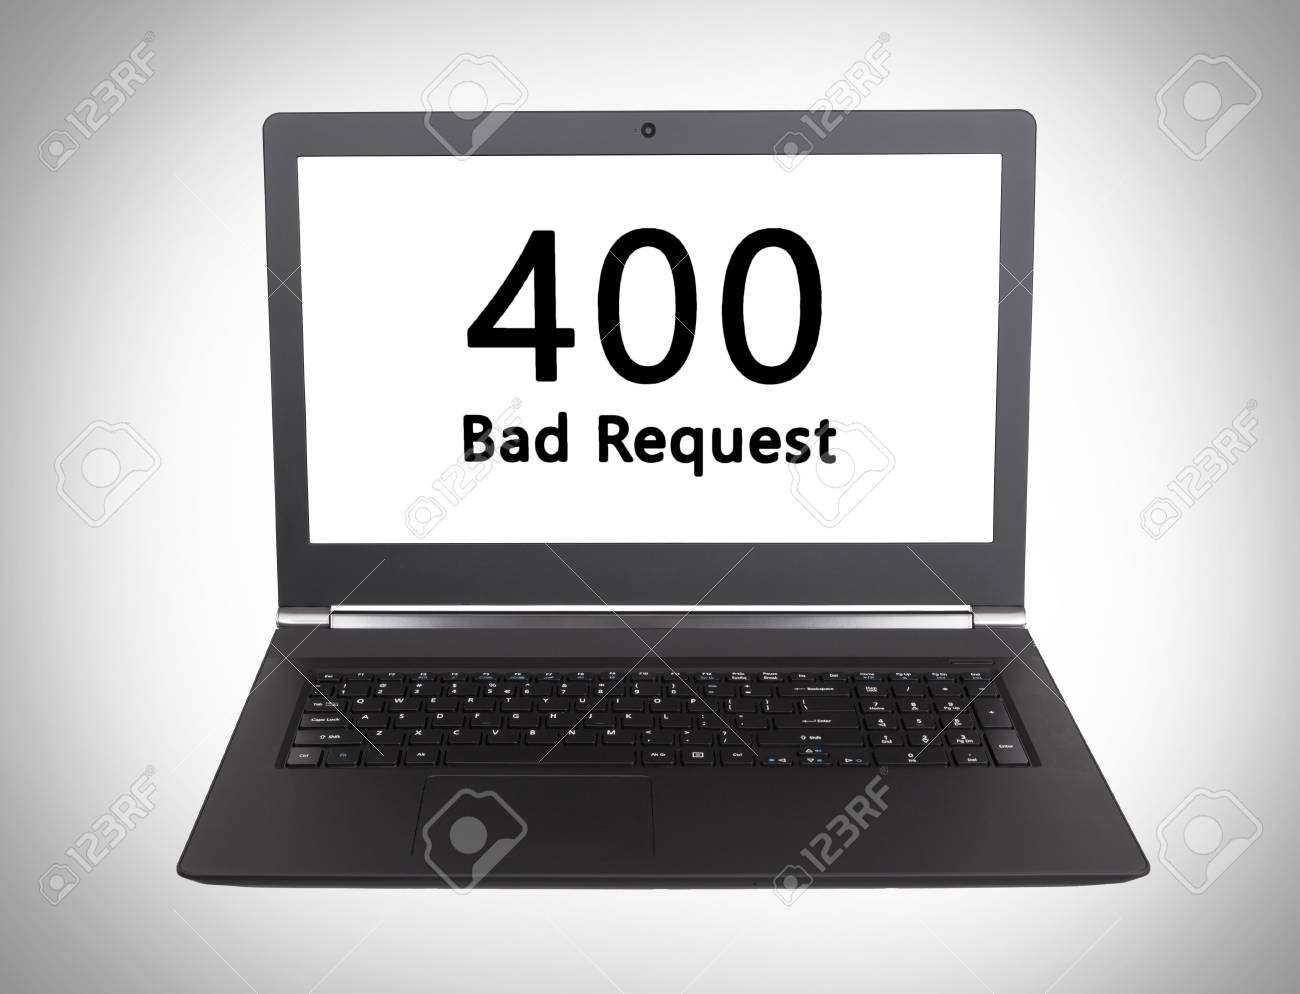 HTTP Status code on a laptop screen - 400, Bad Request